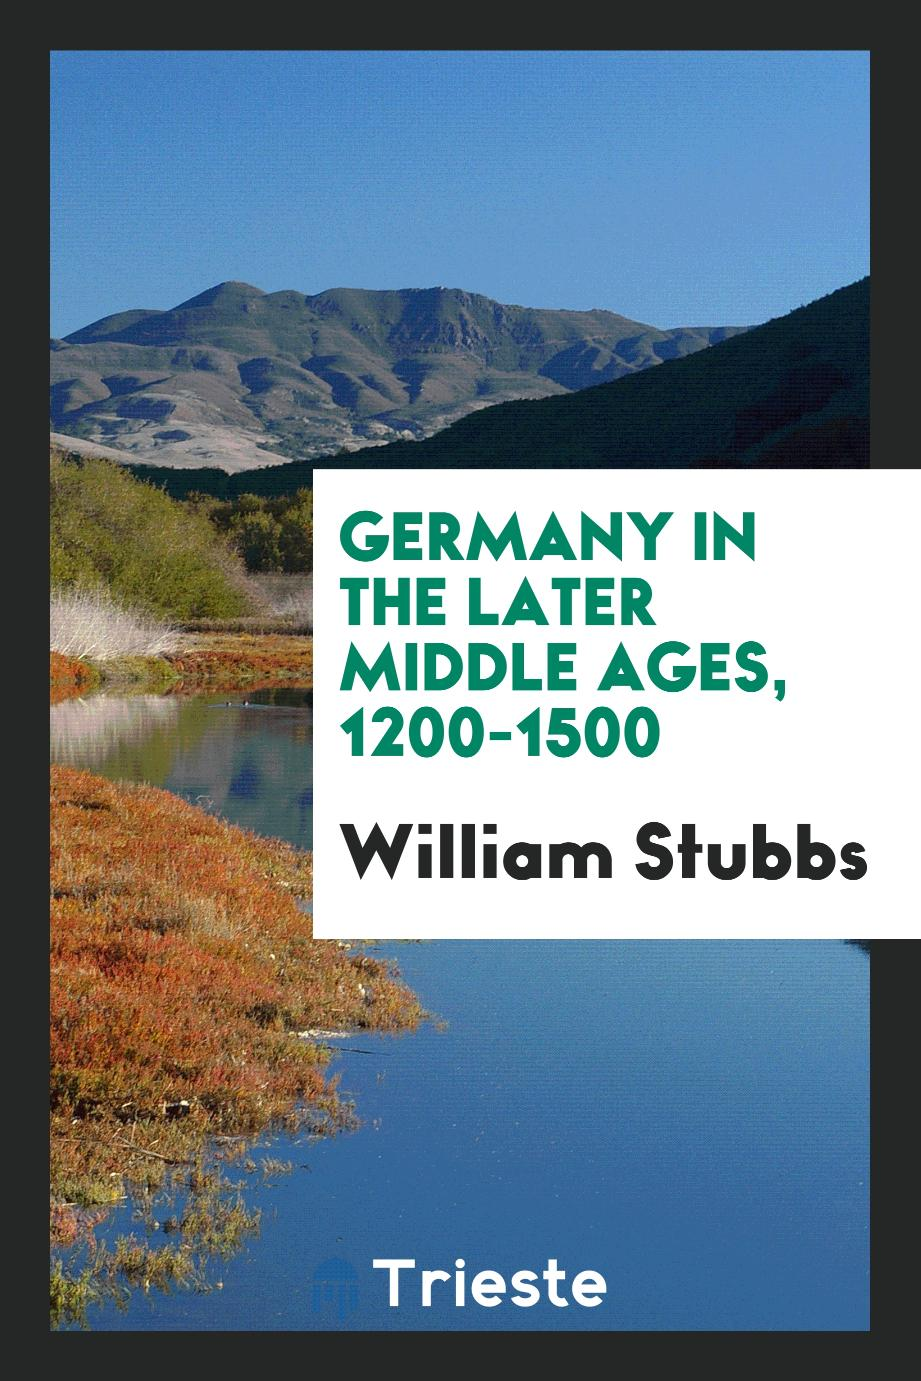 Germany in the later Middle Ages, 1200-1500